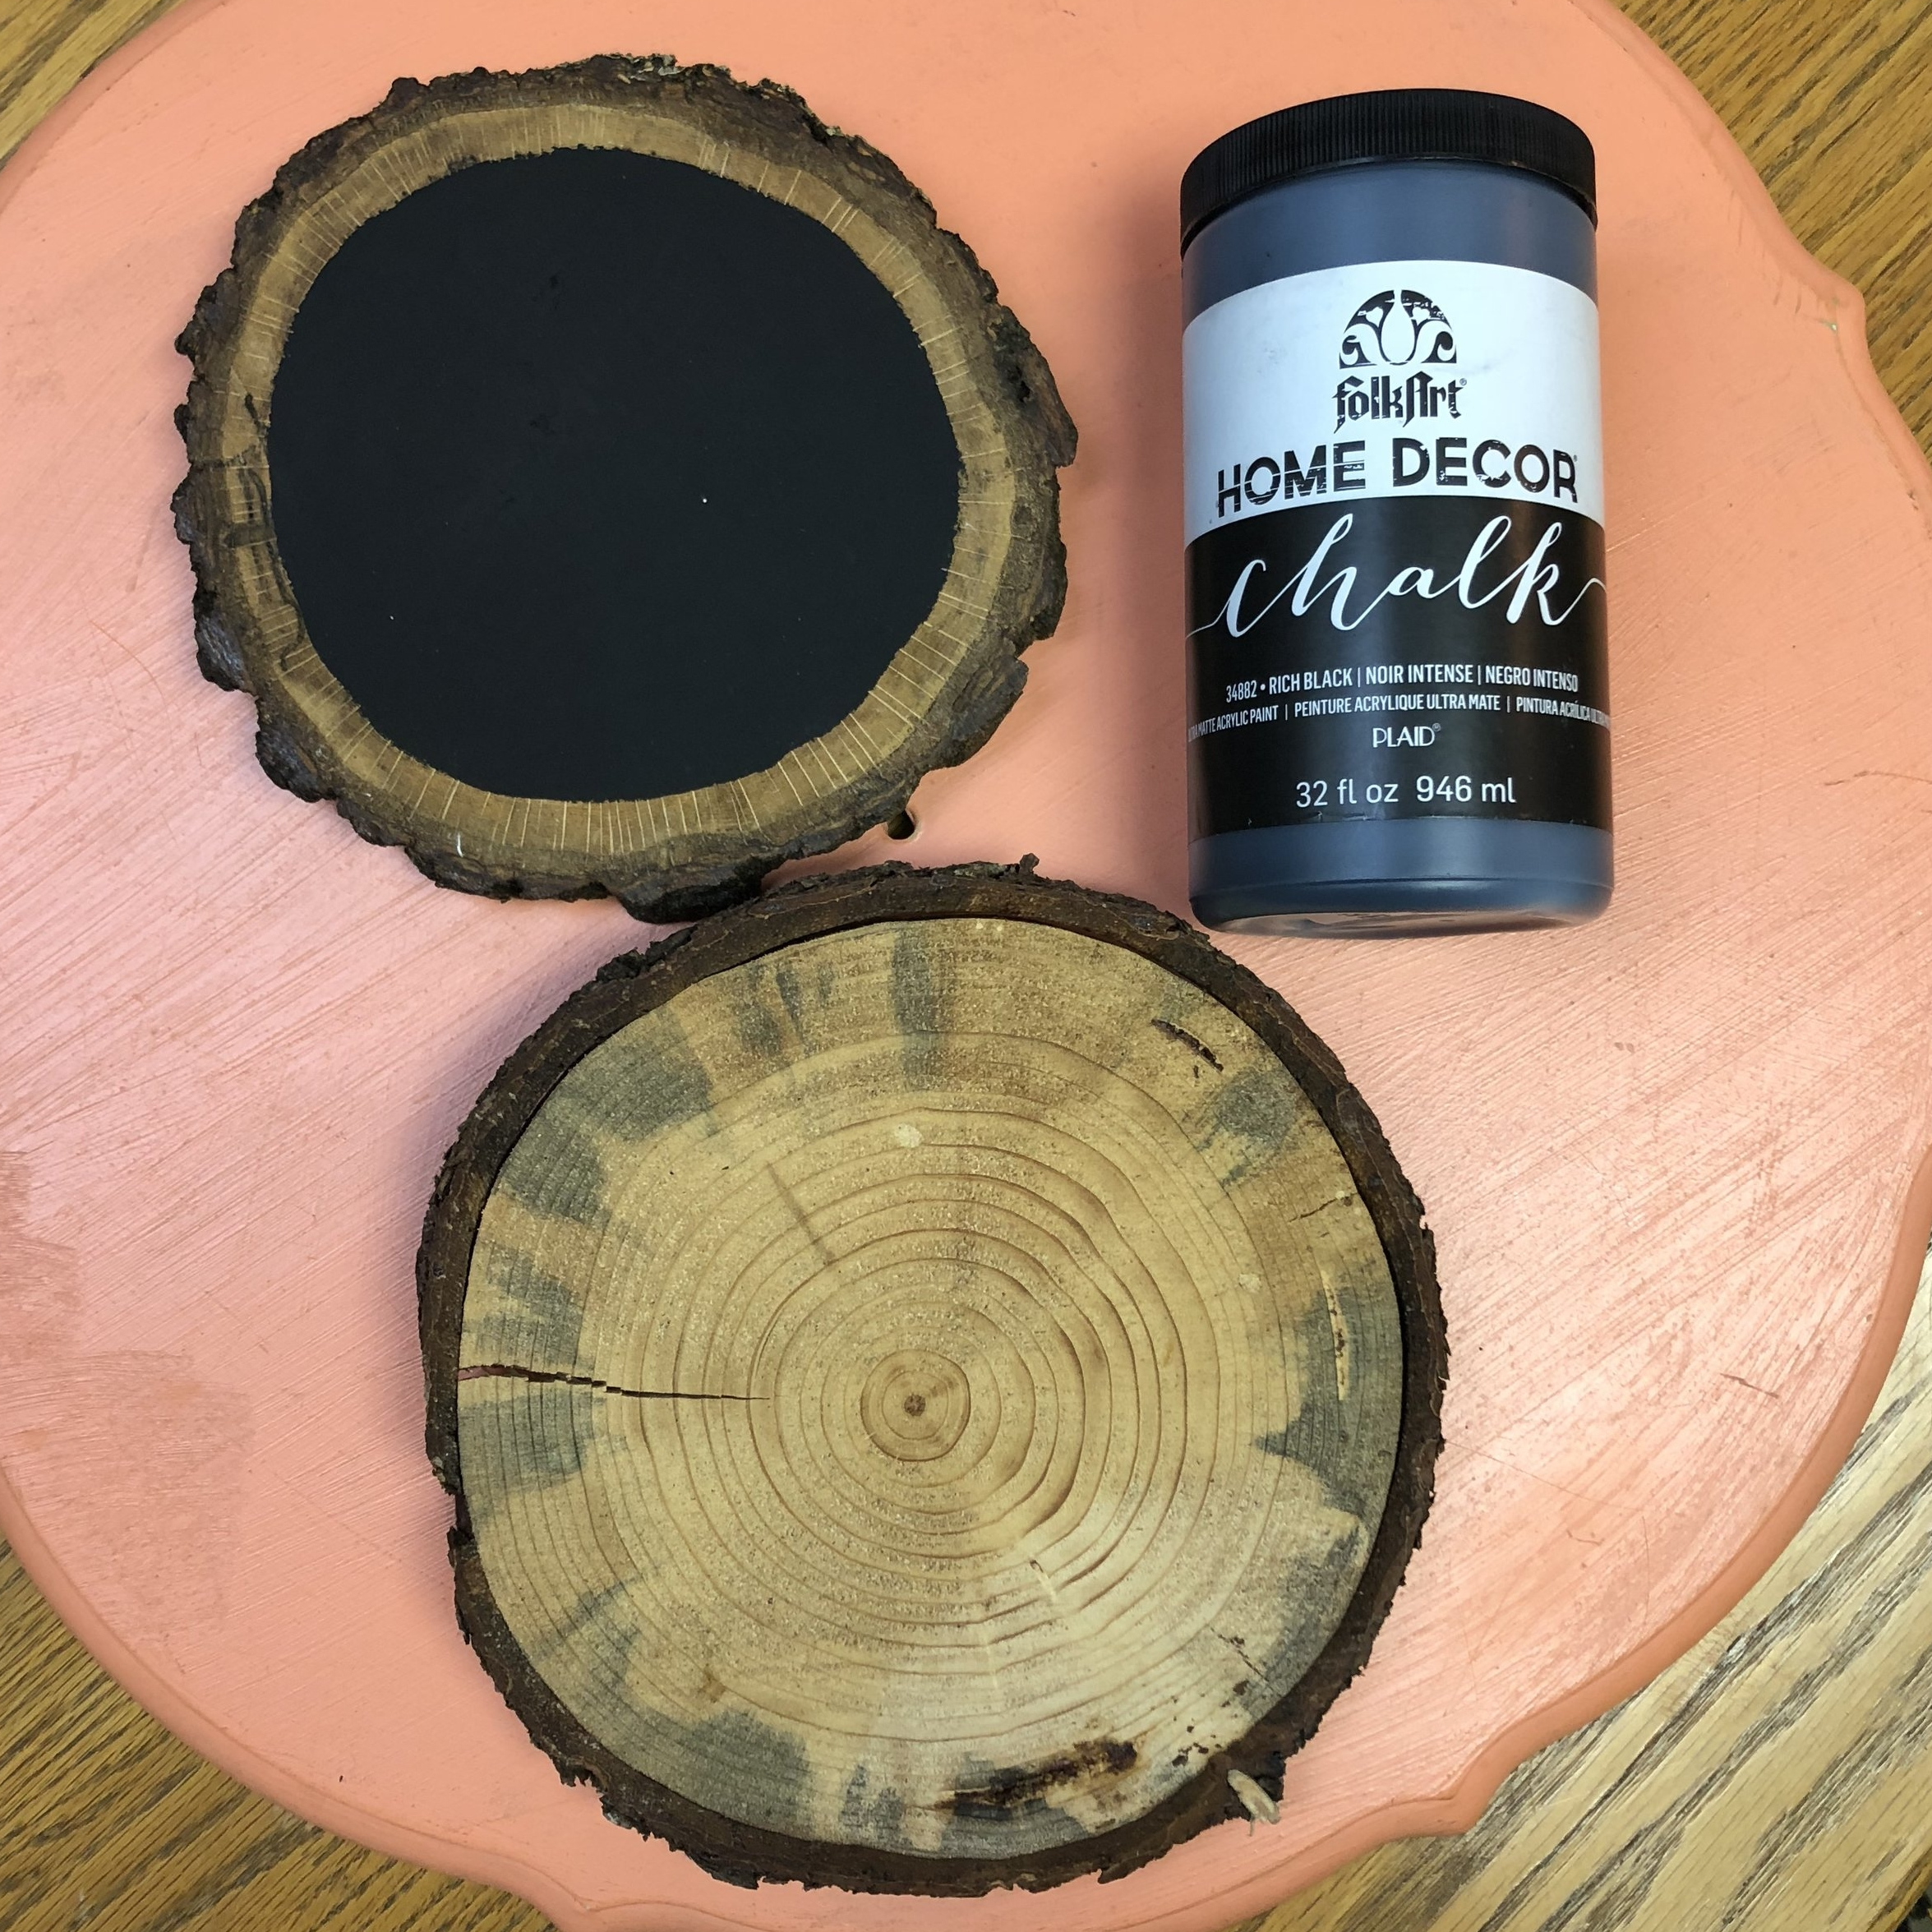 Wood-Slices-Painted-Chalkboard-Home-Decor.jpg